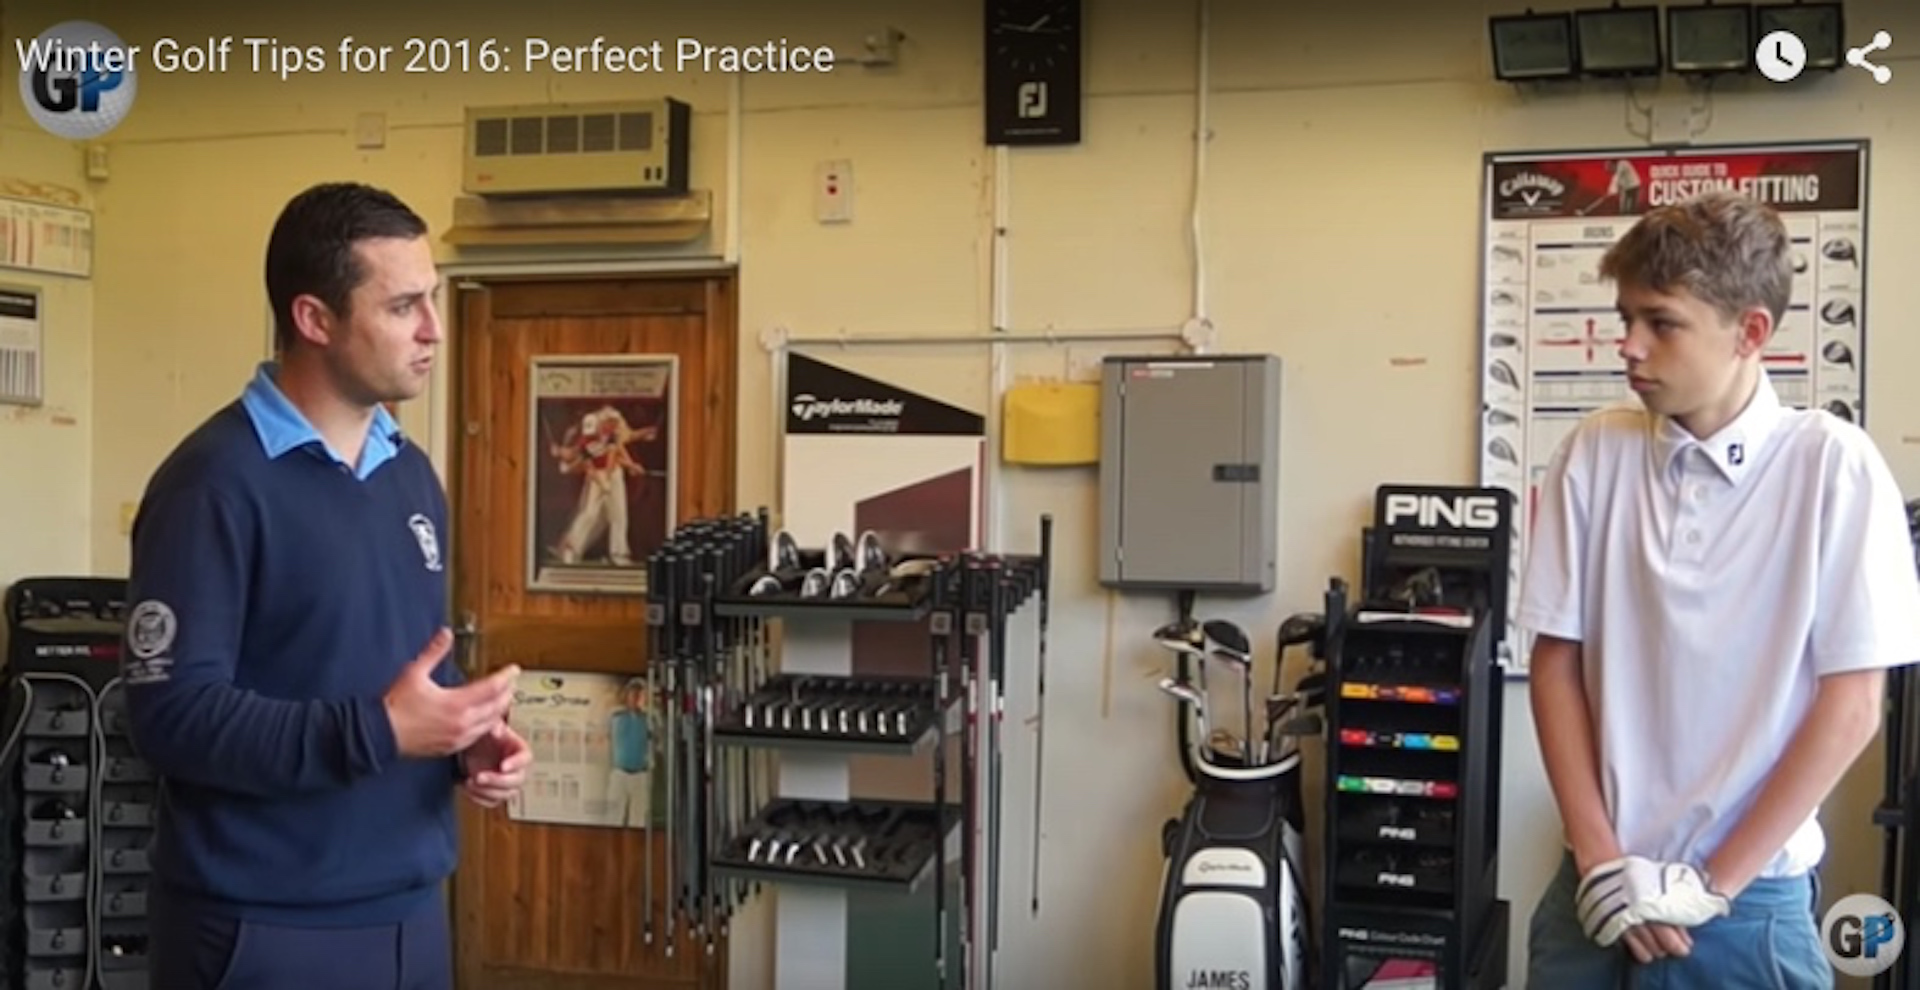 Winter Practice: Top Tips From GP Pro James Verrall